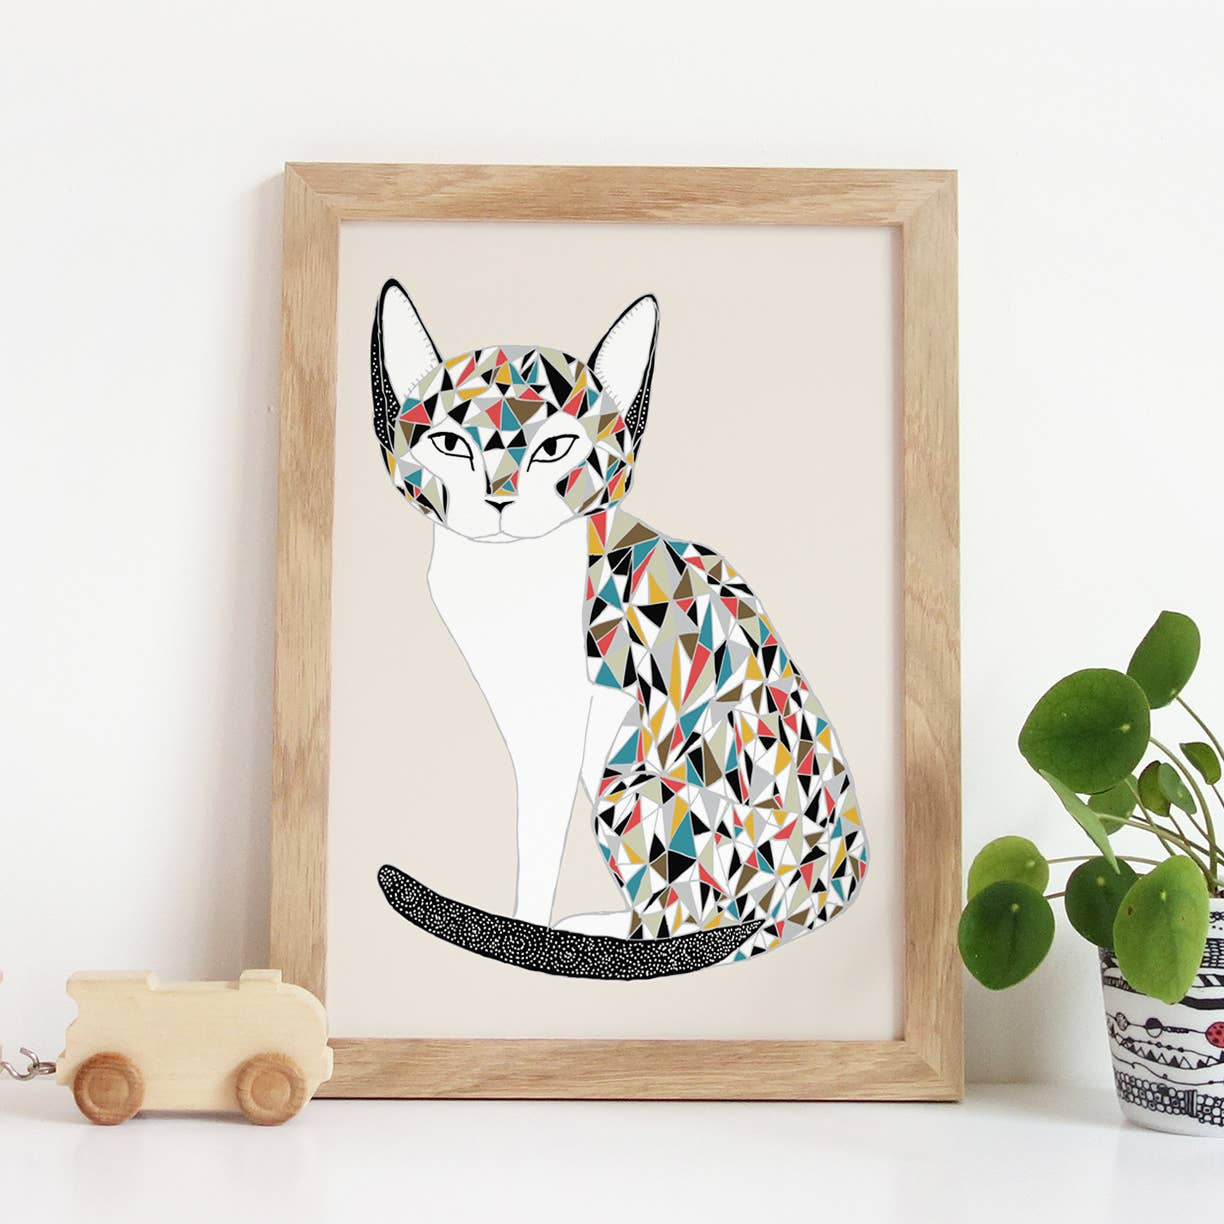 cat art 8x10 print with colorful details.